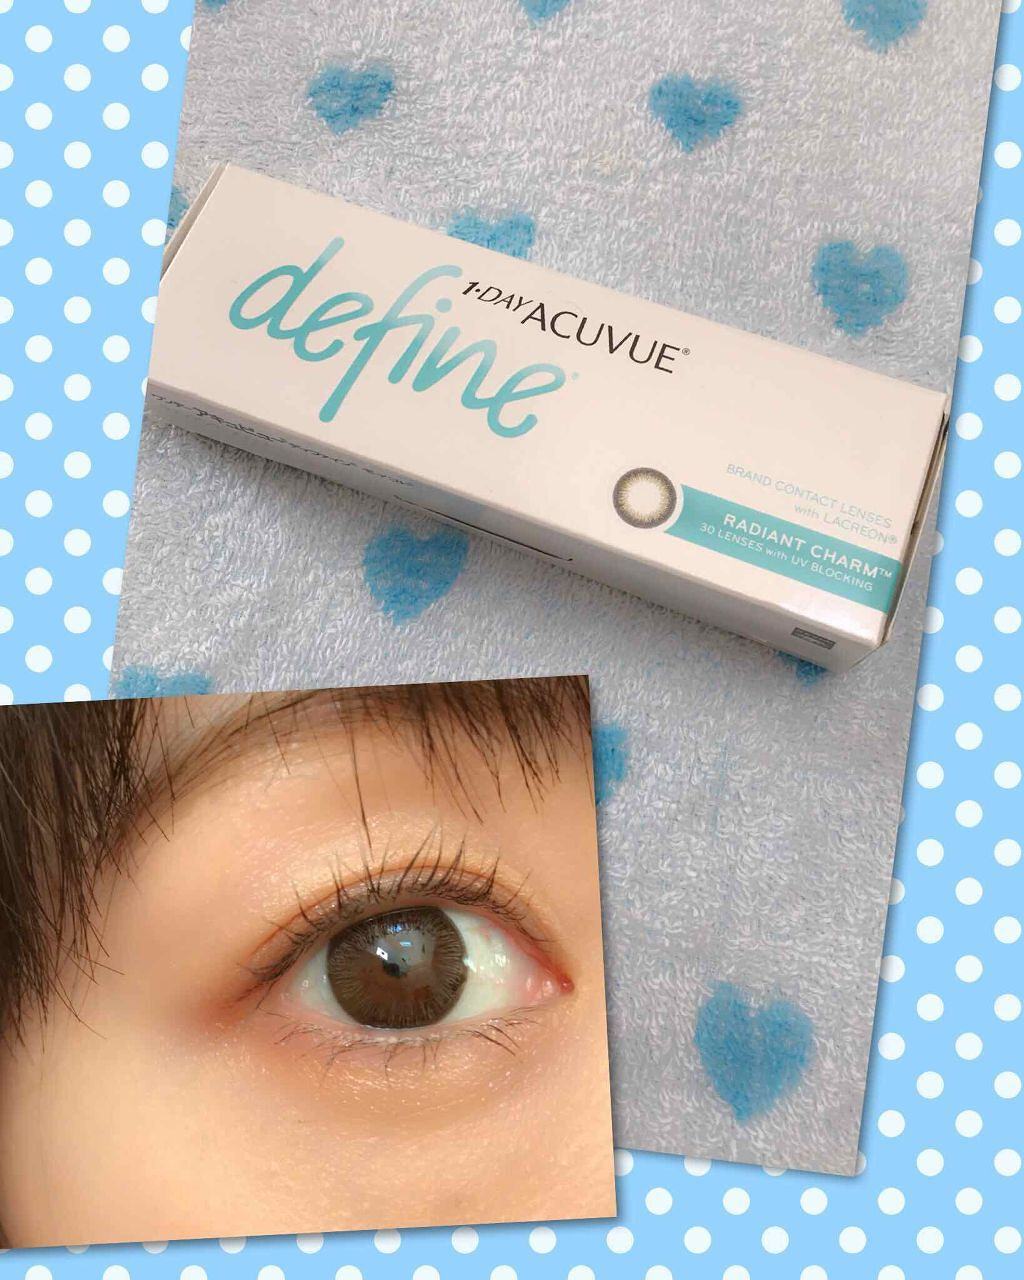 db14a5080e48e Tag 1 Day Define Acuvue. visio optical displaying items by tag ...